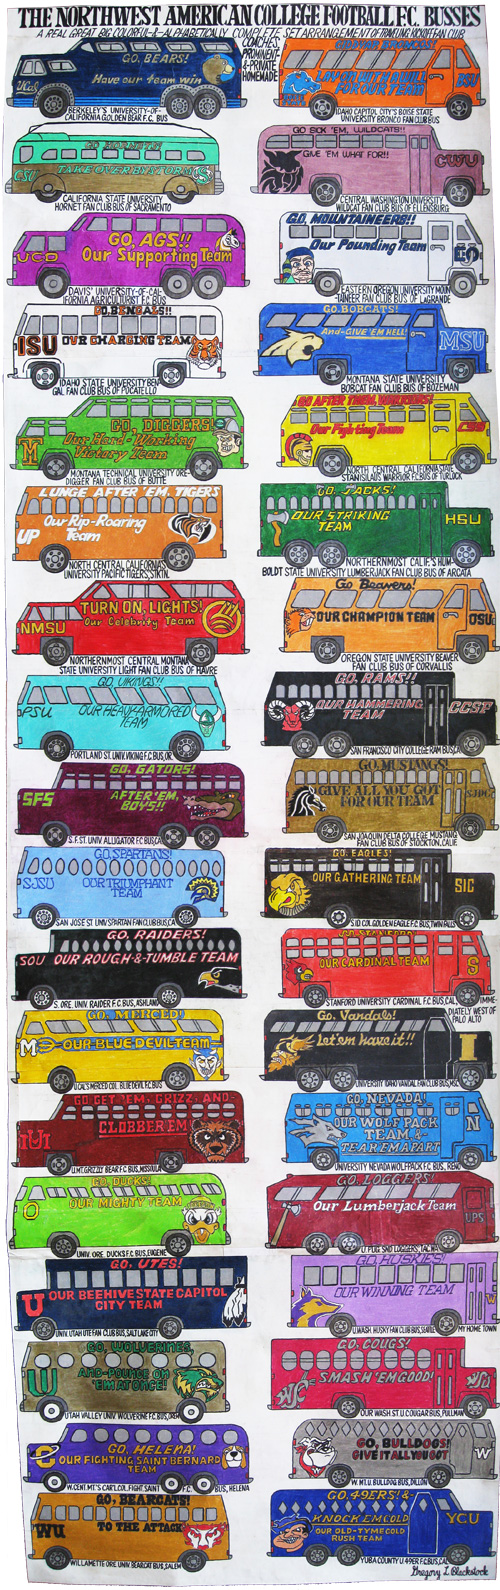 Gregory Blackstocks 2010 drawing The Northwest American College Football F.C. Busses.